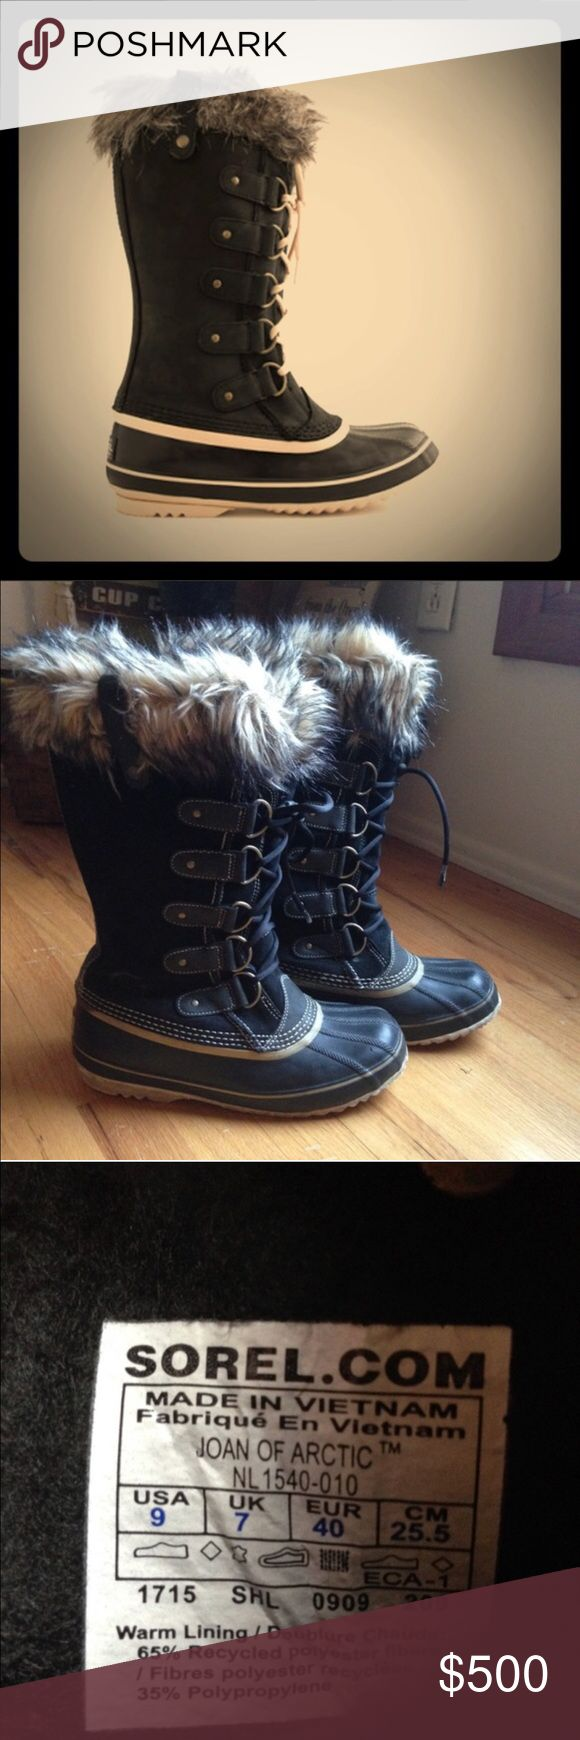 SOREL Joan of Arctic BLACK Sz 9 SOREL Joan of Arctic BLACK Sz 9 These boots are used with lots of life left SUPER fashionable and sought after! Founded in Ontario, Canada, in 1908, Sorel has long been synonymous with cold-weather footwear. Plus, it was the first company to combine durable uppers with waterproof rubber bottoms and warm lining, which is totally genius! This style captures all of that and more: faux-fur cuff and a cool exclusive colorway you won't find anywhere else. Suede…